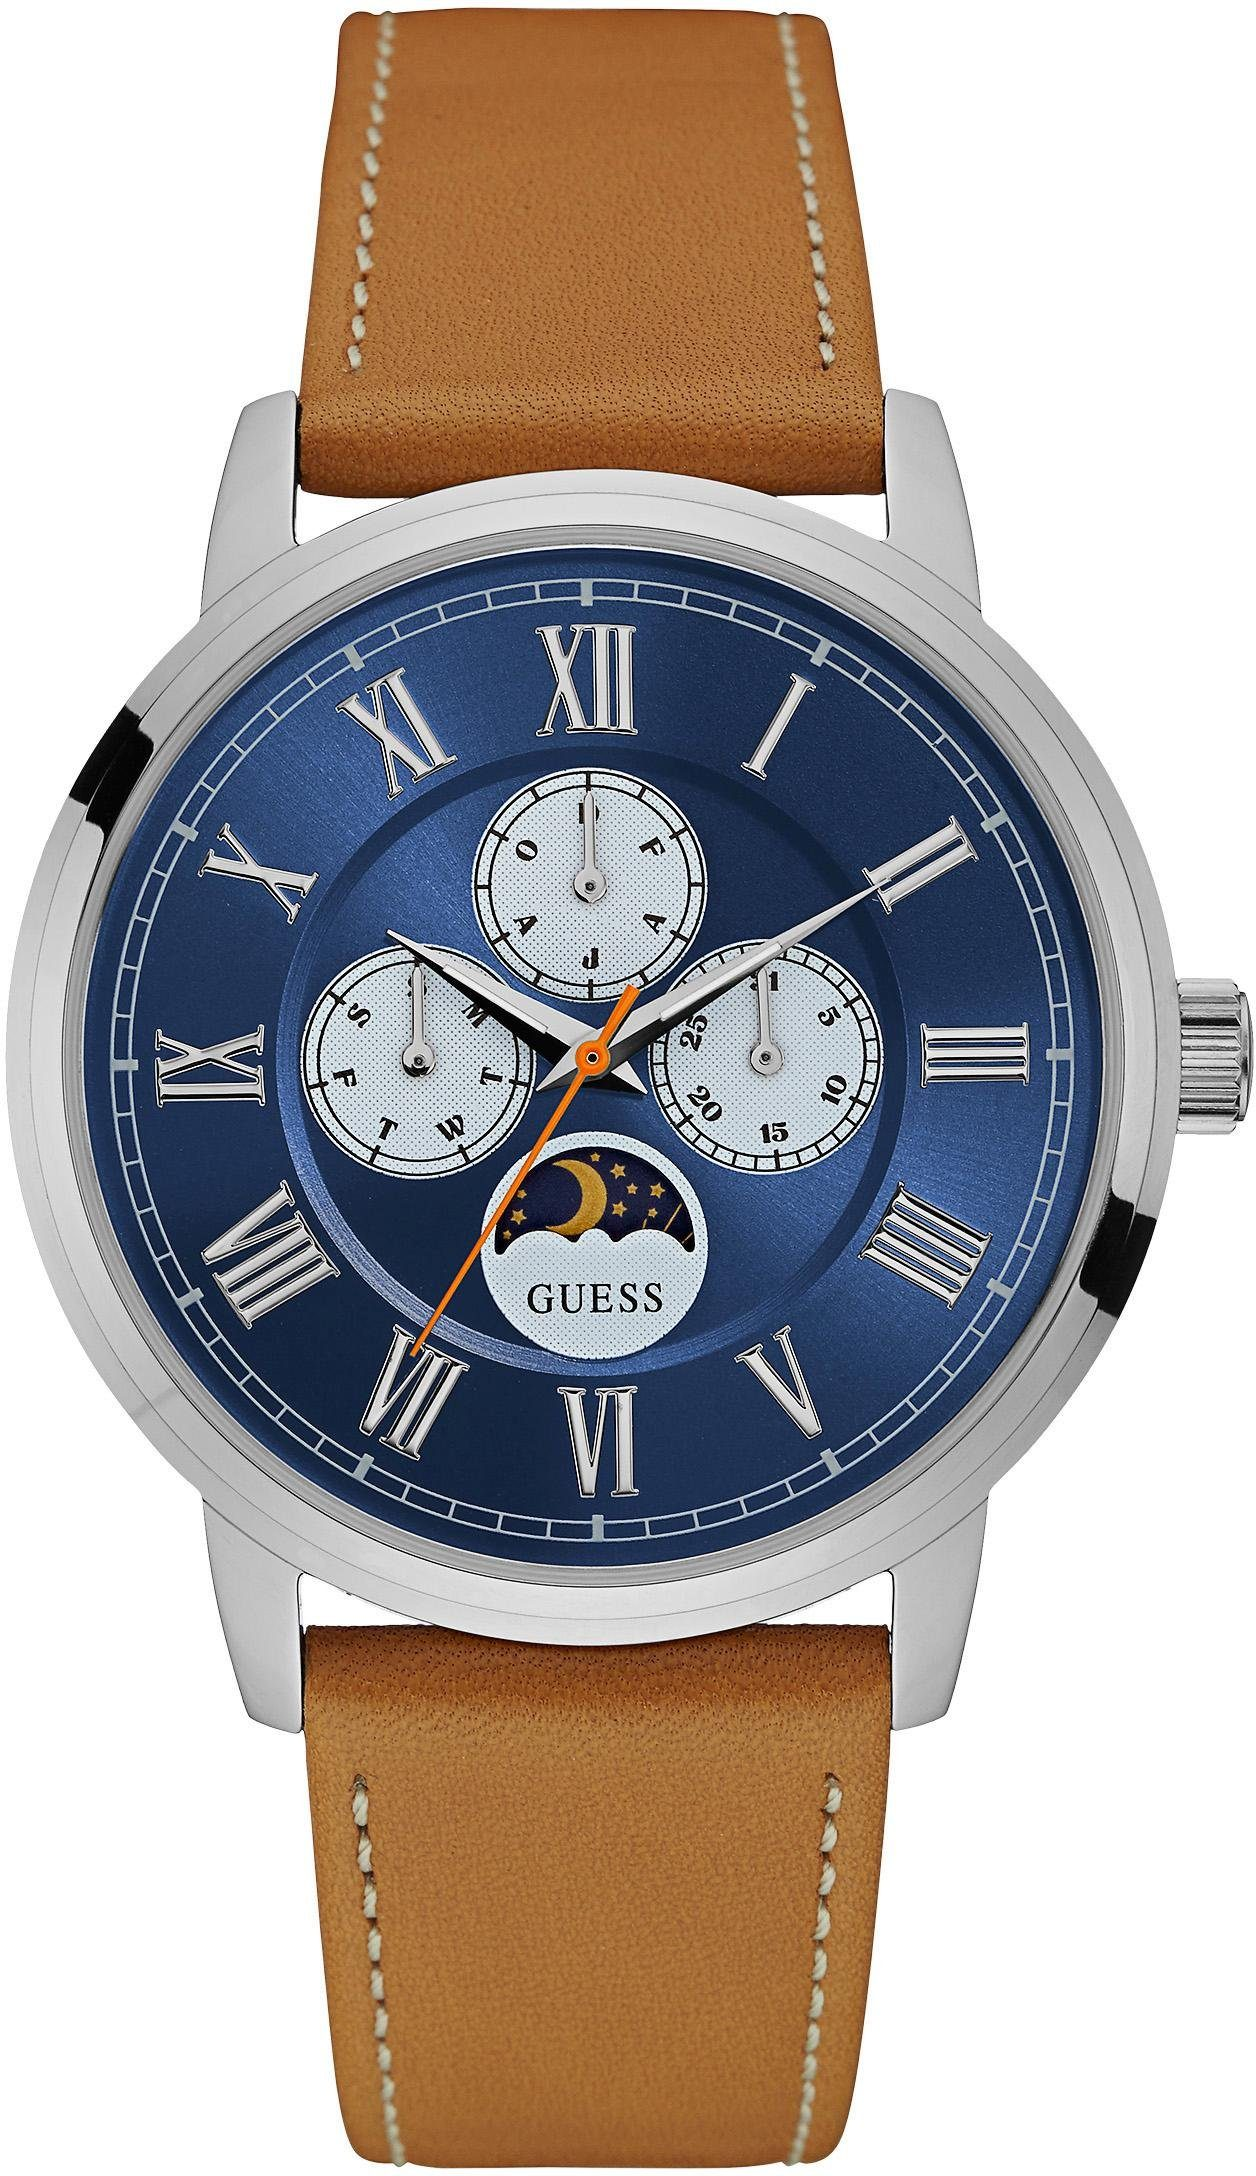 Guess Multifunktionsuhr »DELANCY, W0870G4«